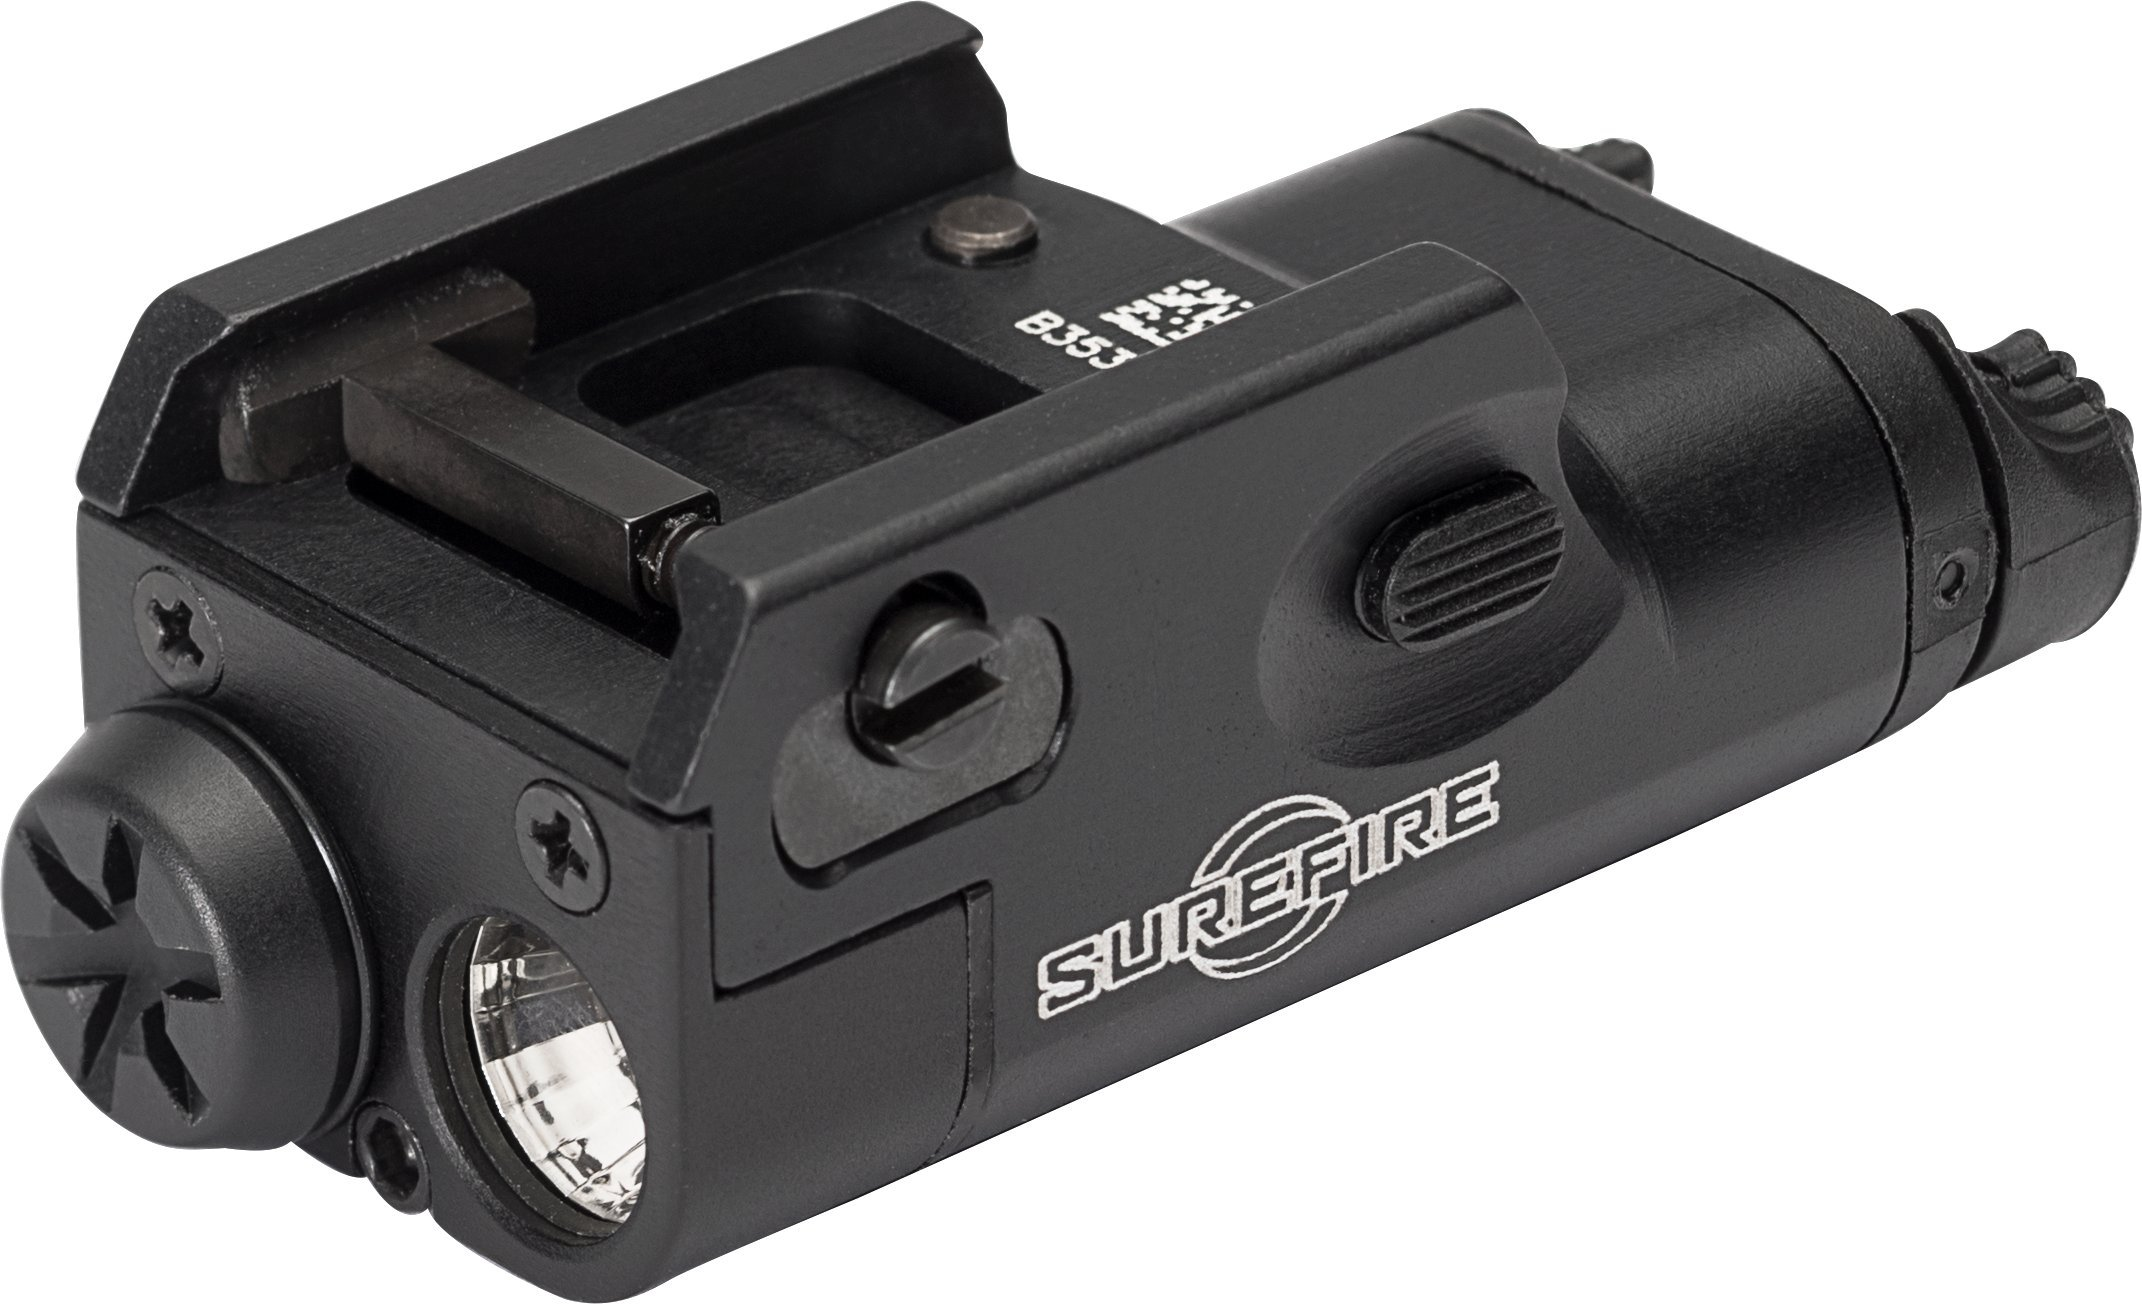 SureFire Weaponlights/XC1-B XC1-B Compact Handgun Light with Improved Constant-On Activation Switches, Black